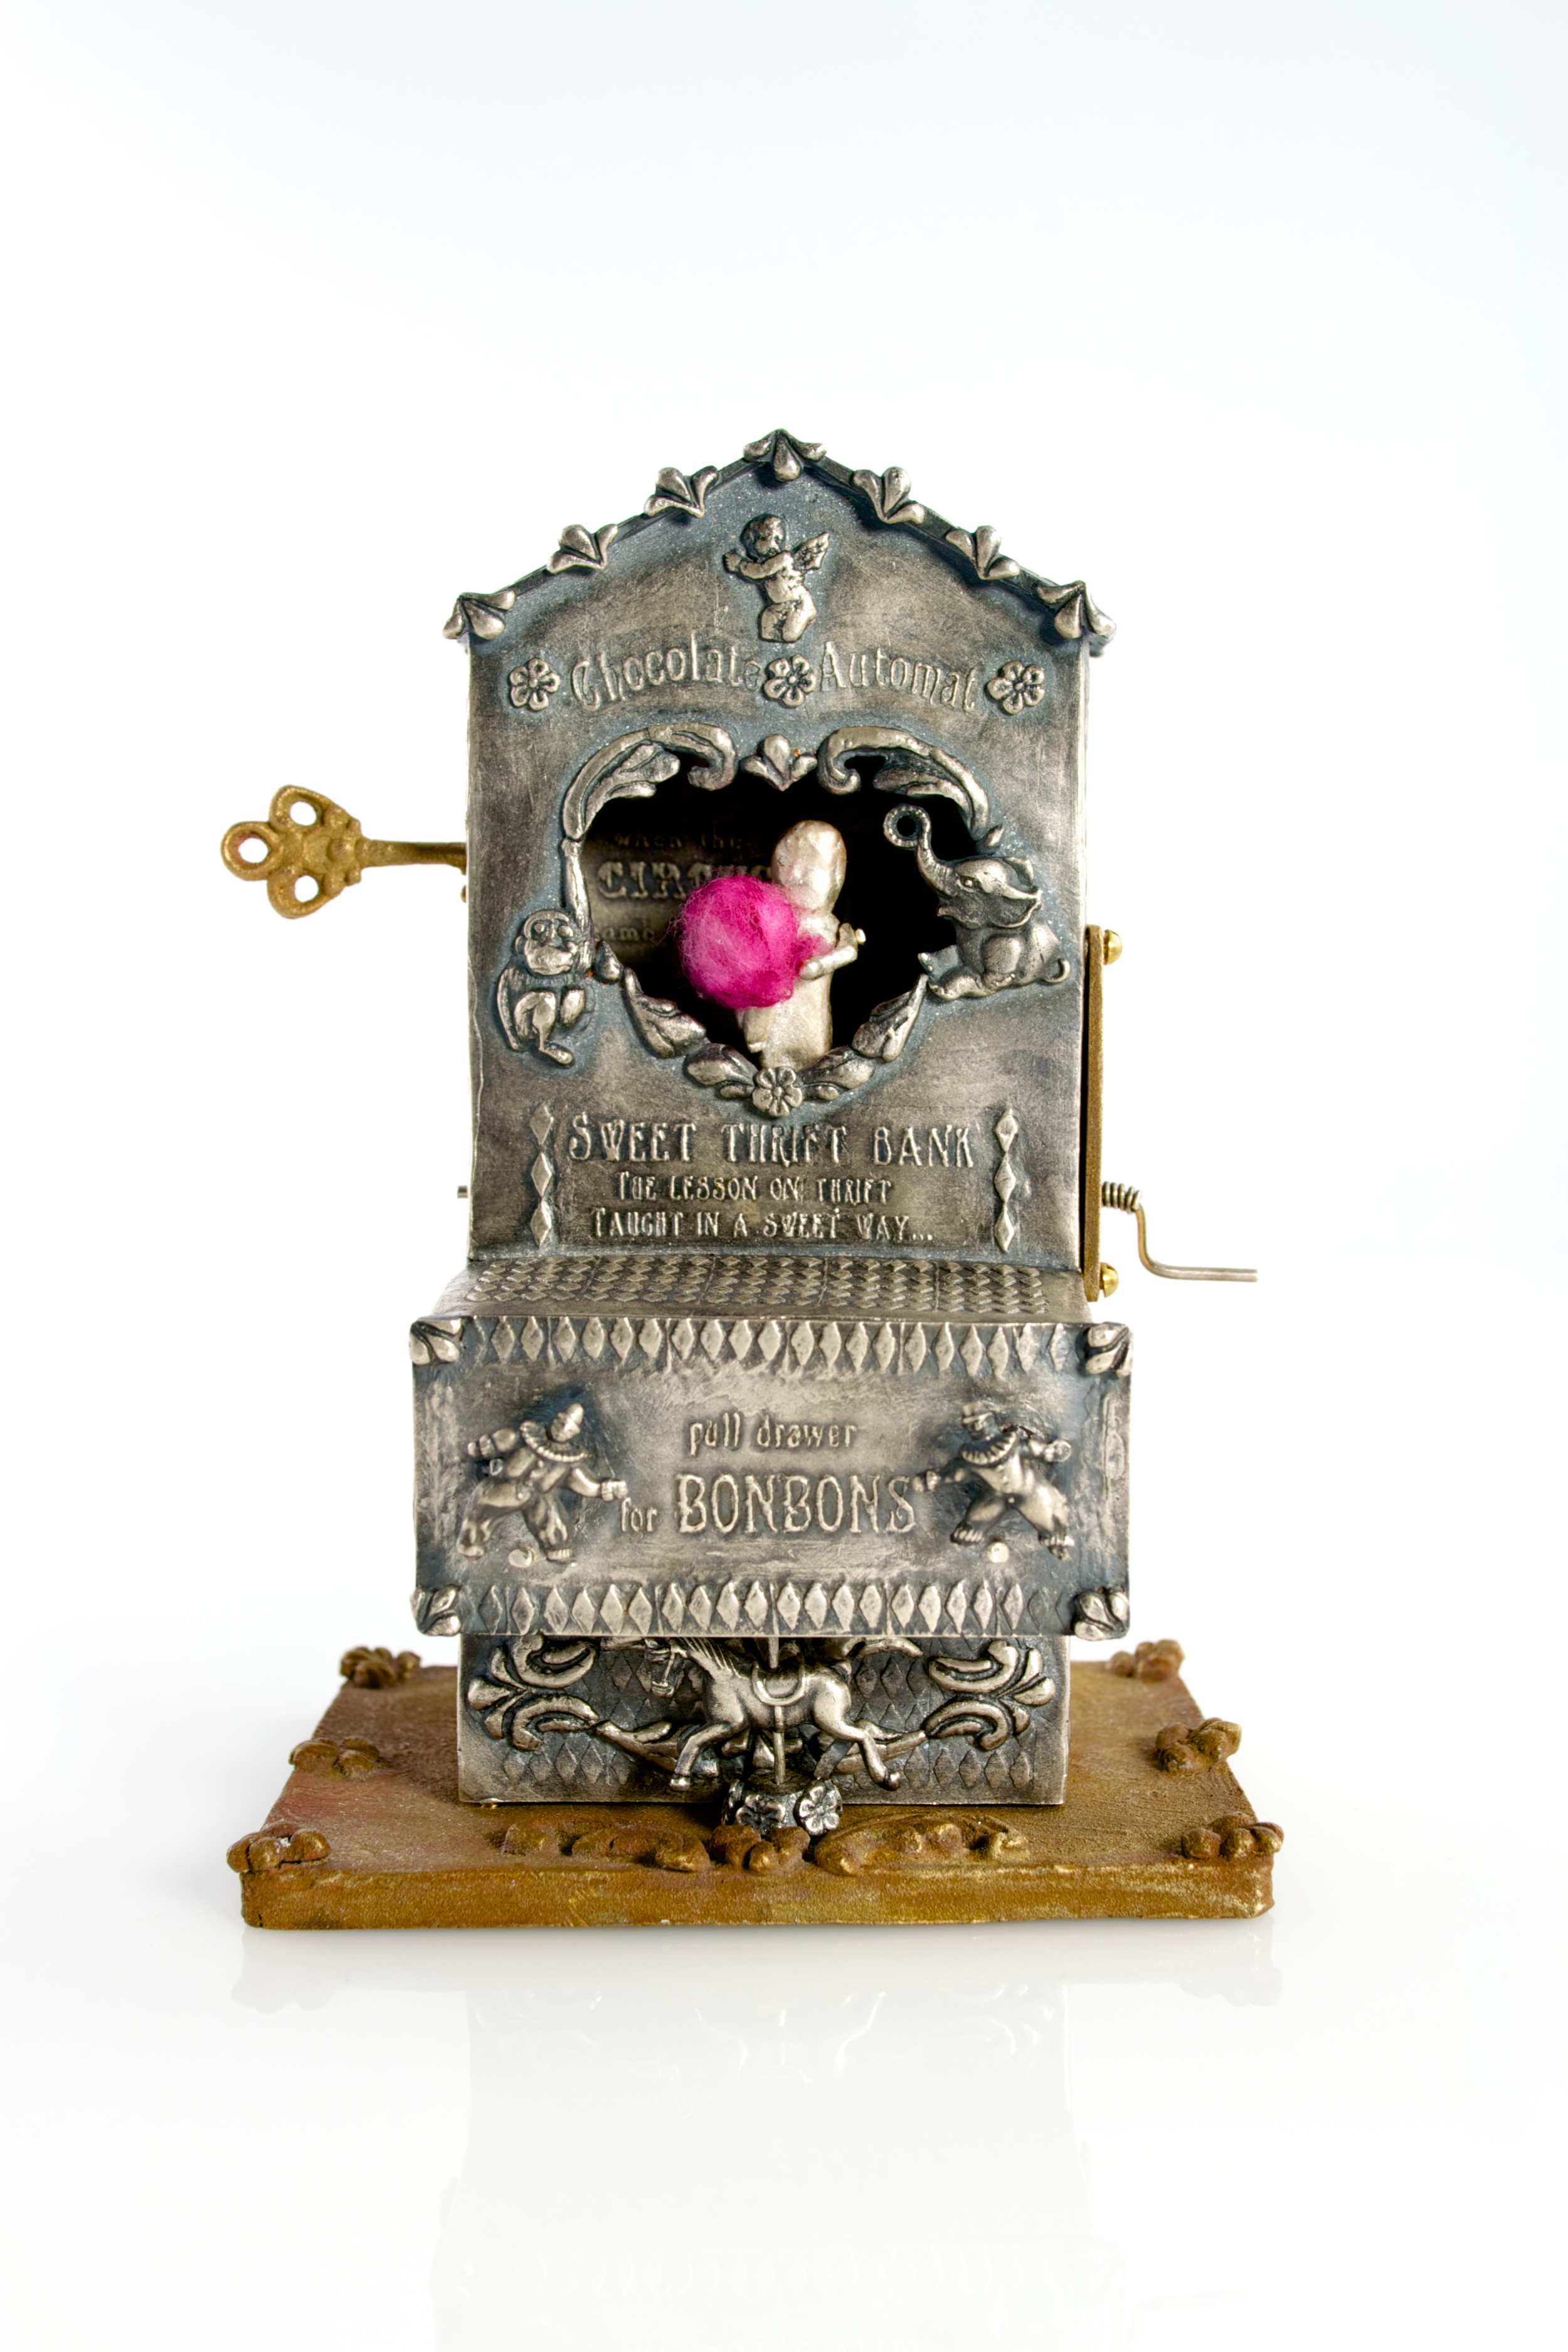 Reliquary of childhood memories  ; silver, bronze, brass, local cotton, India ink; 2012-13